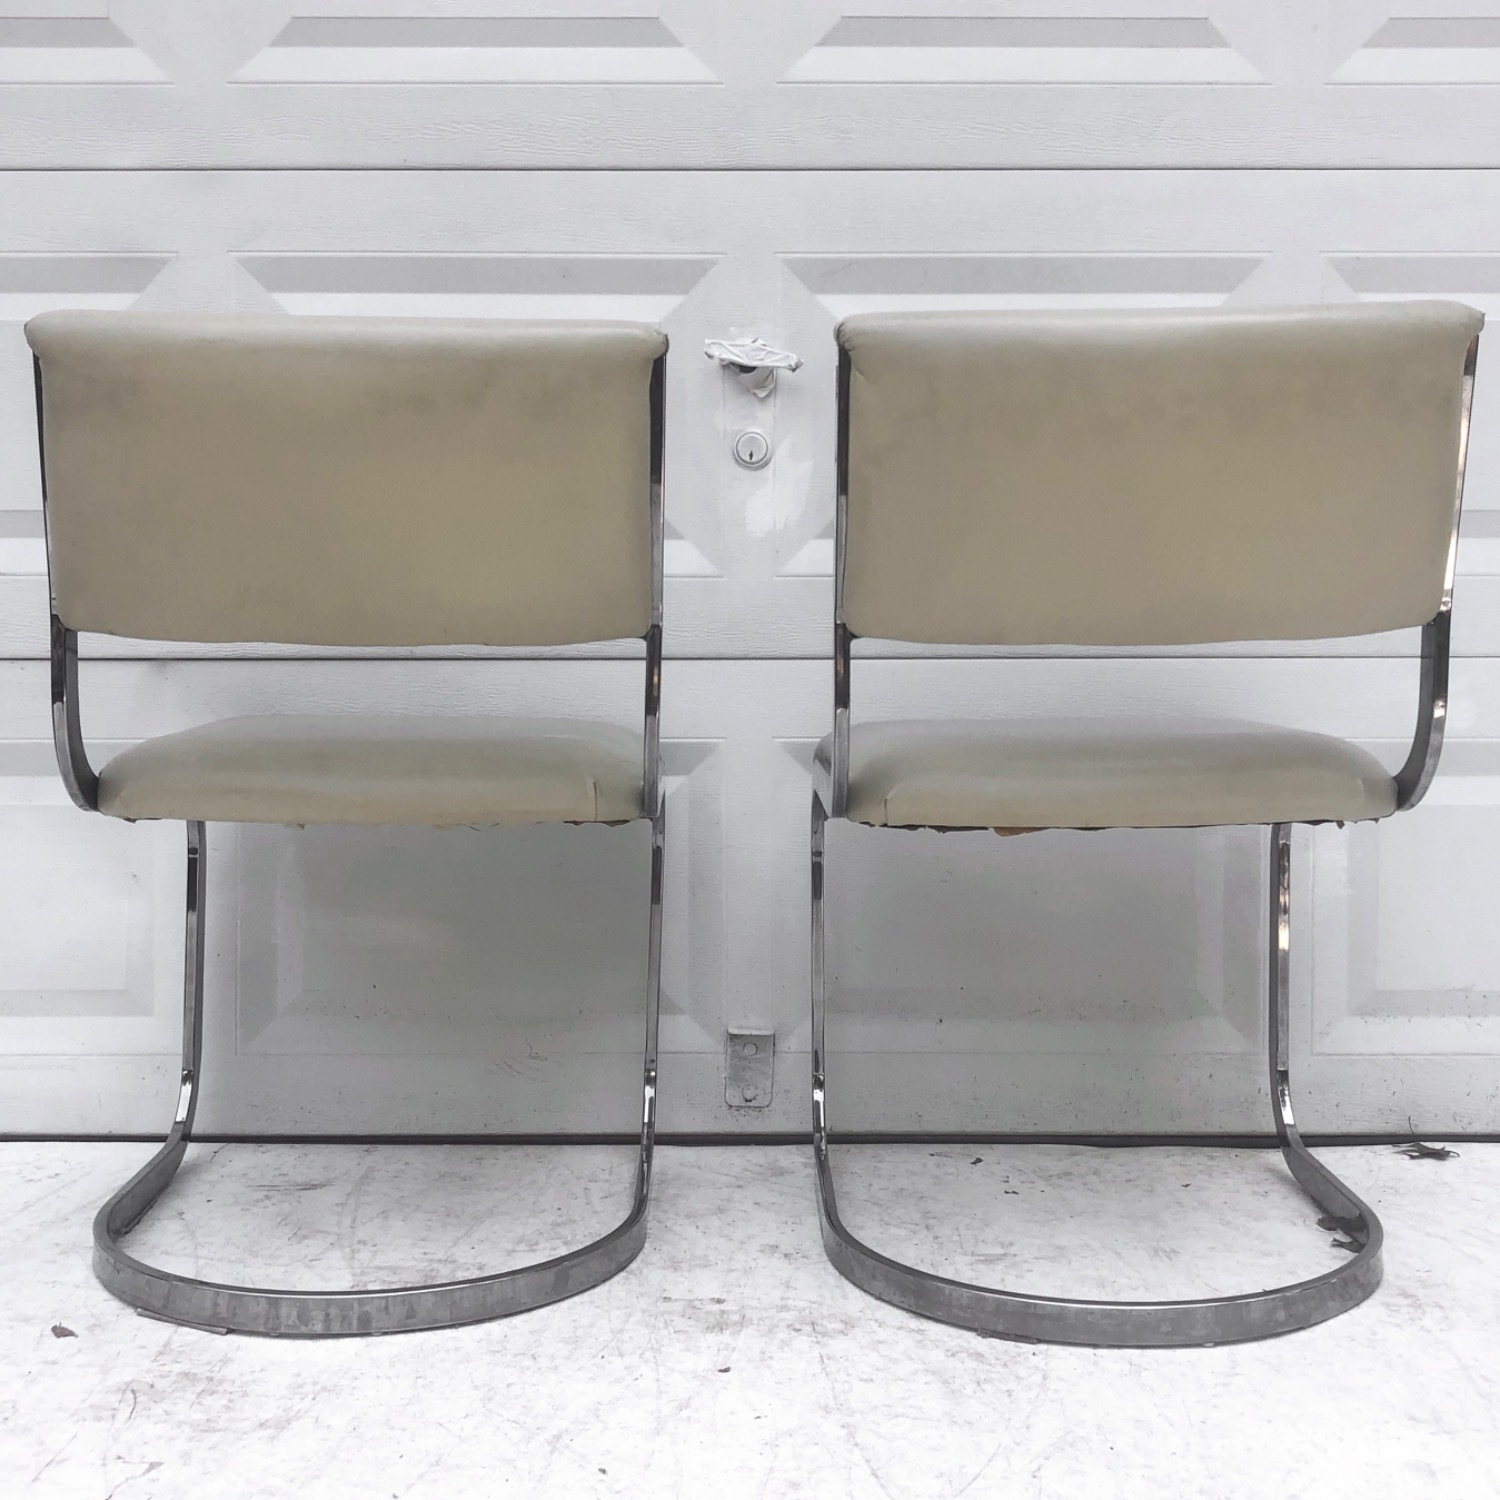 Vintage Modern Dining Chairs Set of 8 - image-5